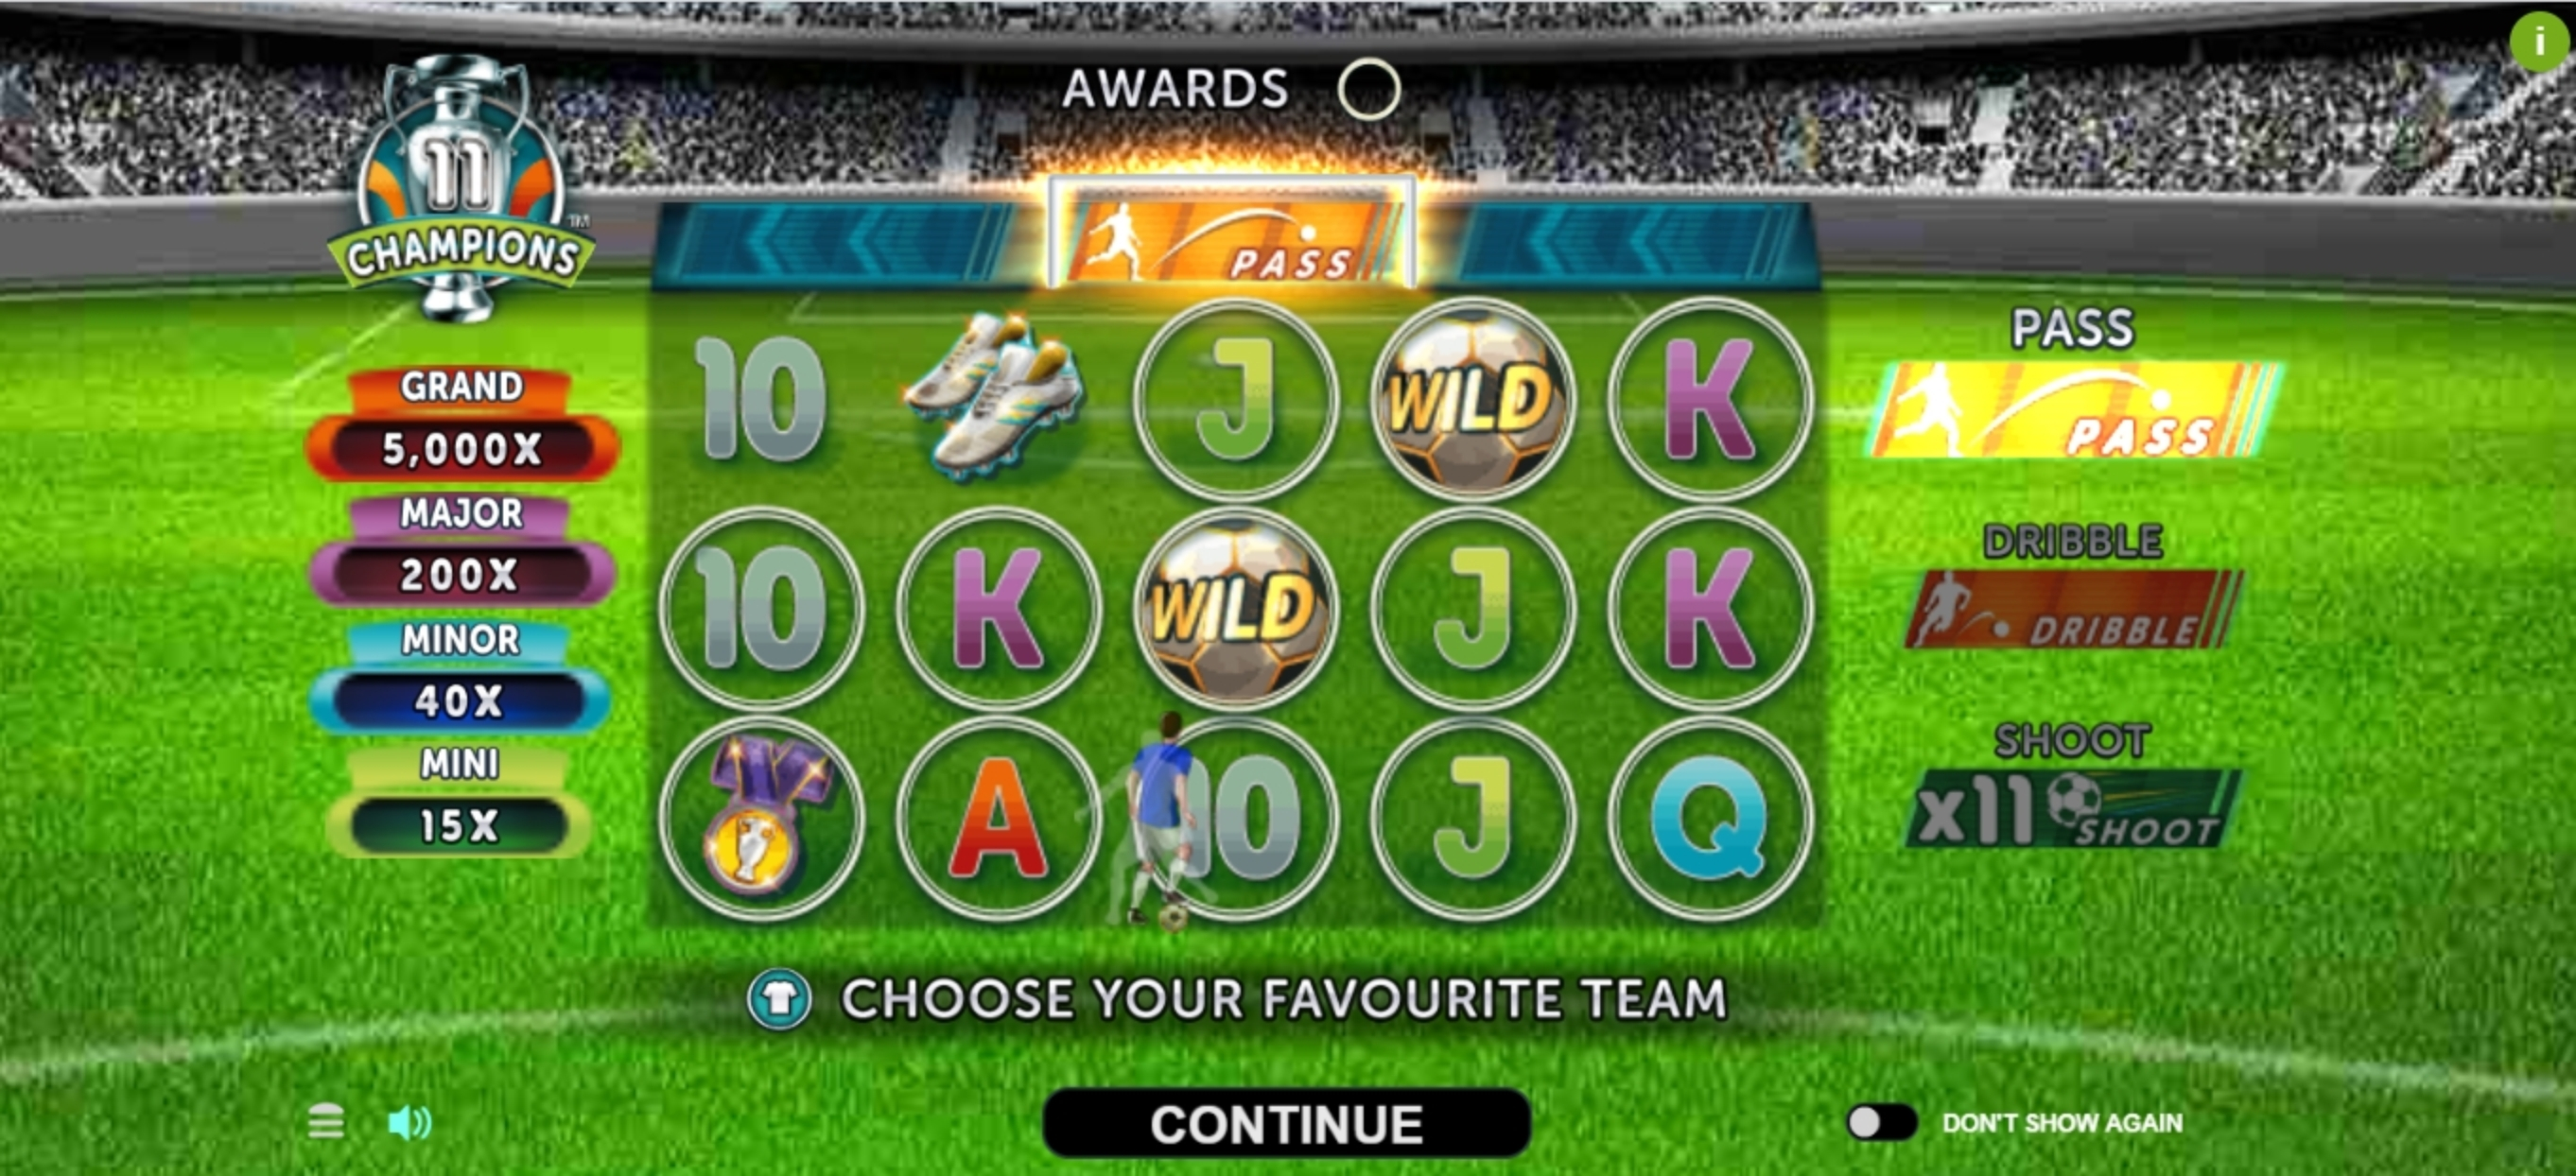 Play 11 Champions Free Casino Slot Game by Gameburger Studios